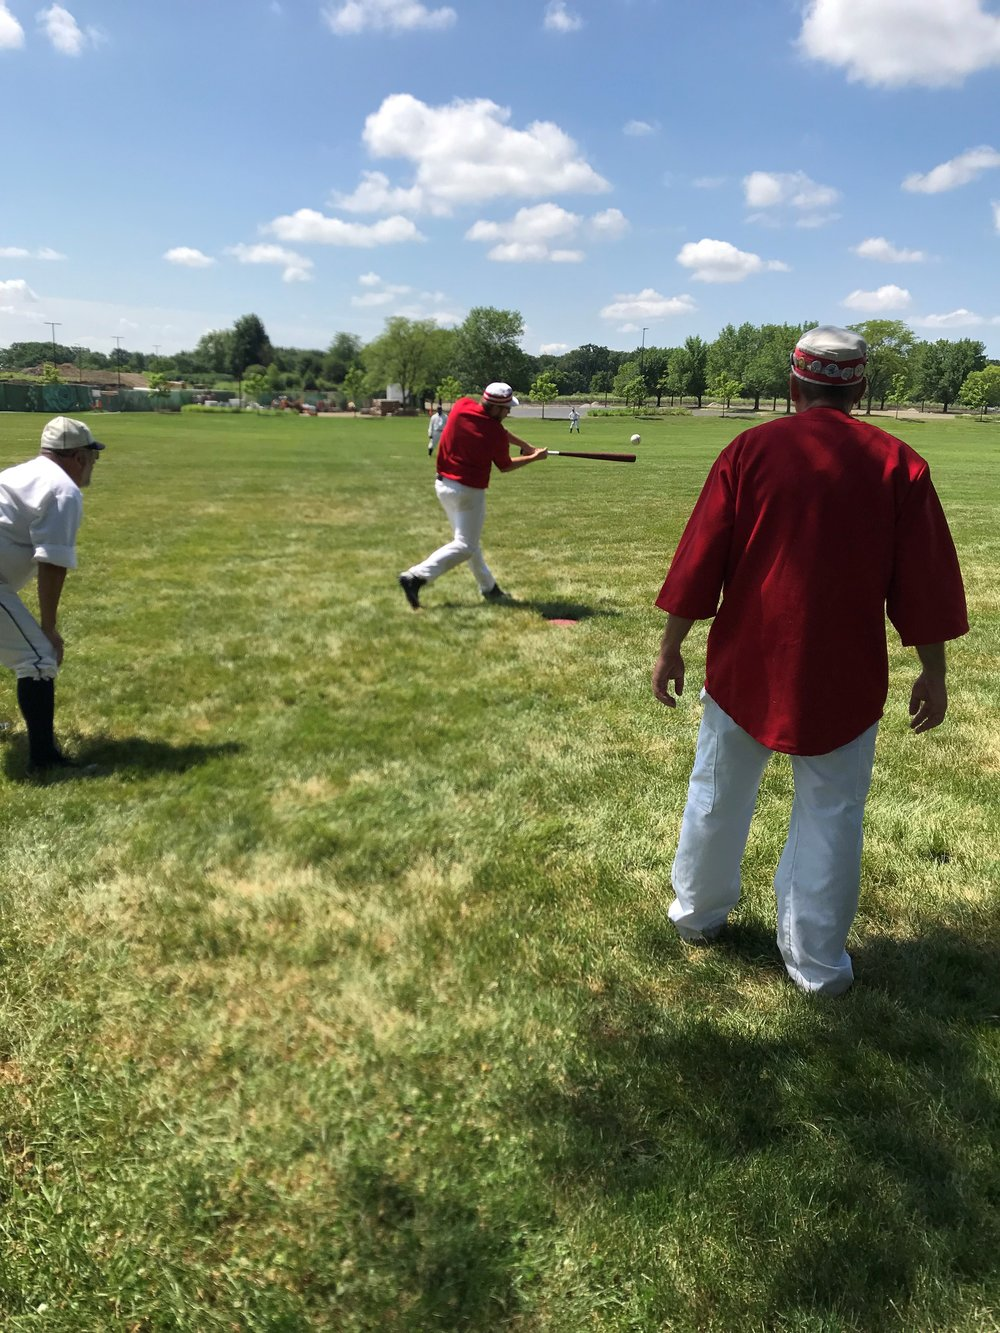 The DuPage Plowboys played The Aurora Town Team in Game 1 of the 5th annual Red Oak Vintage Baseball Festival at Cantigny